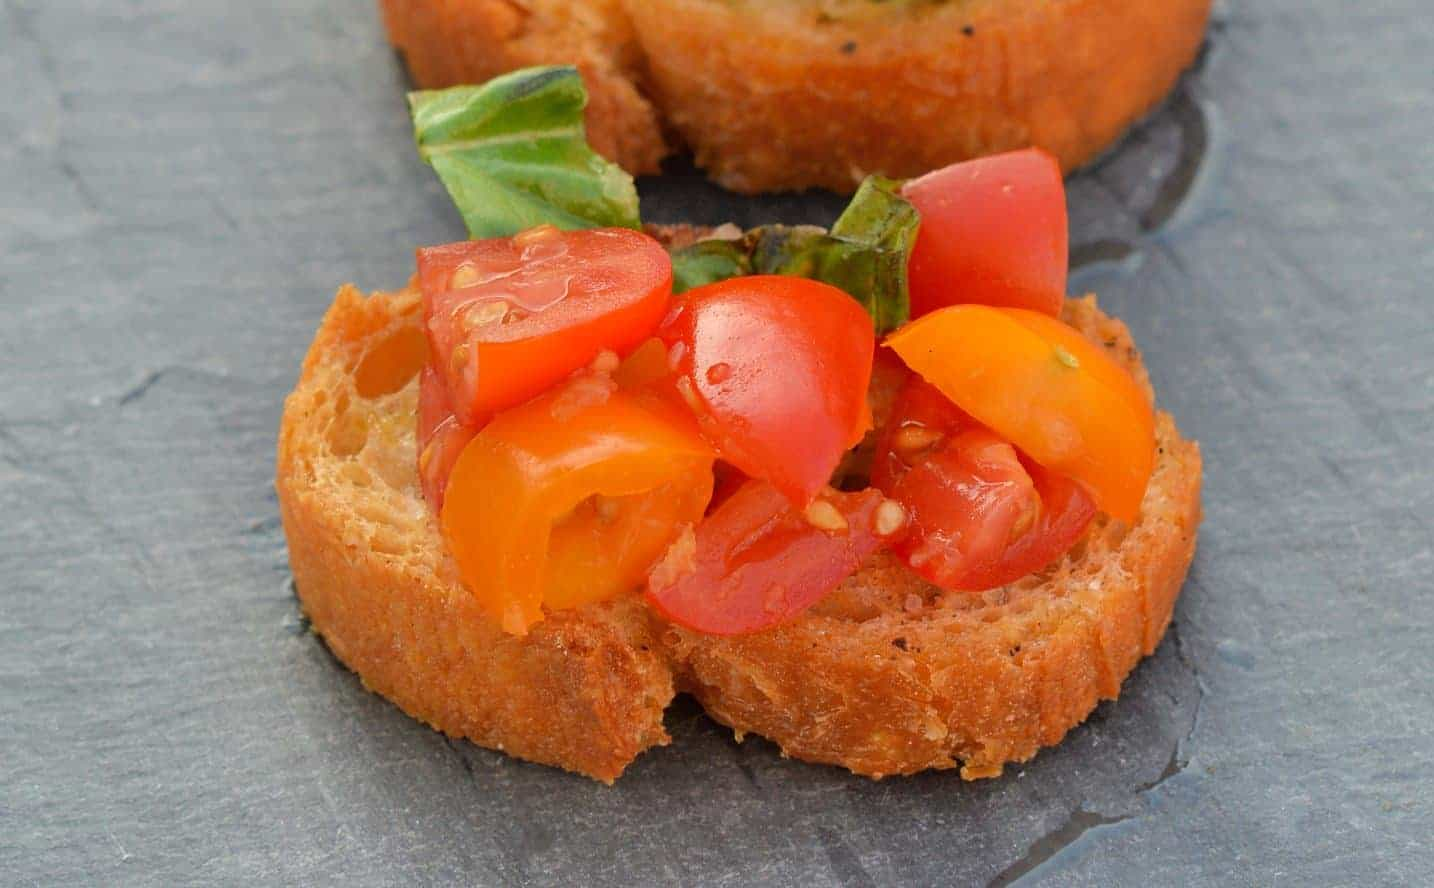 This Tomato Bruschetta recipe is a classic no cook appetizer that can be ready in as little as 20 minutes using fresh tomatoes, basil and garlic. #easybruschetta #tomatobruschetta www.savoryexperiments.com